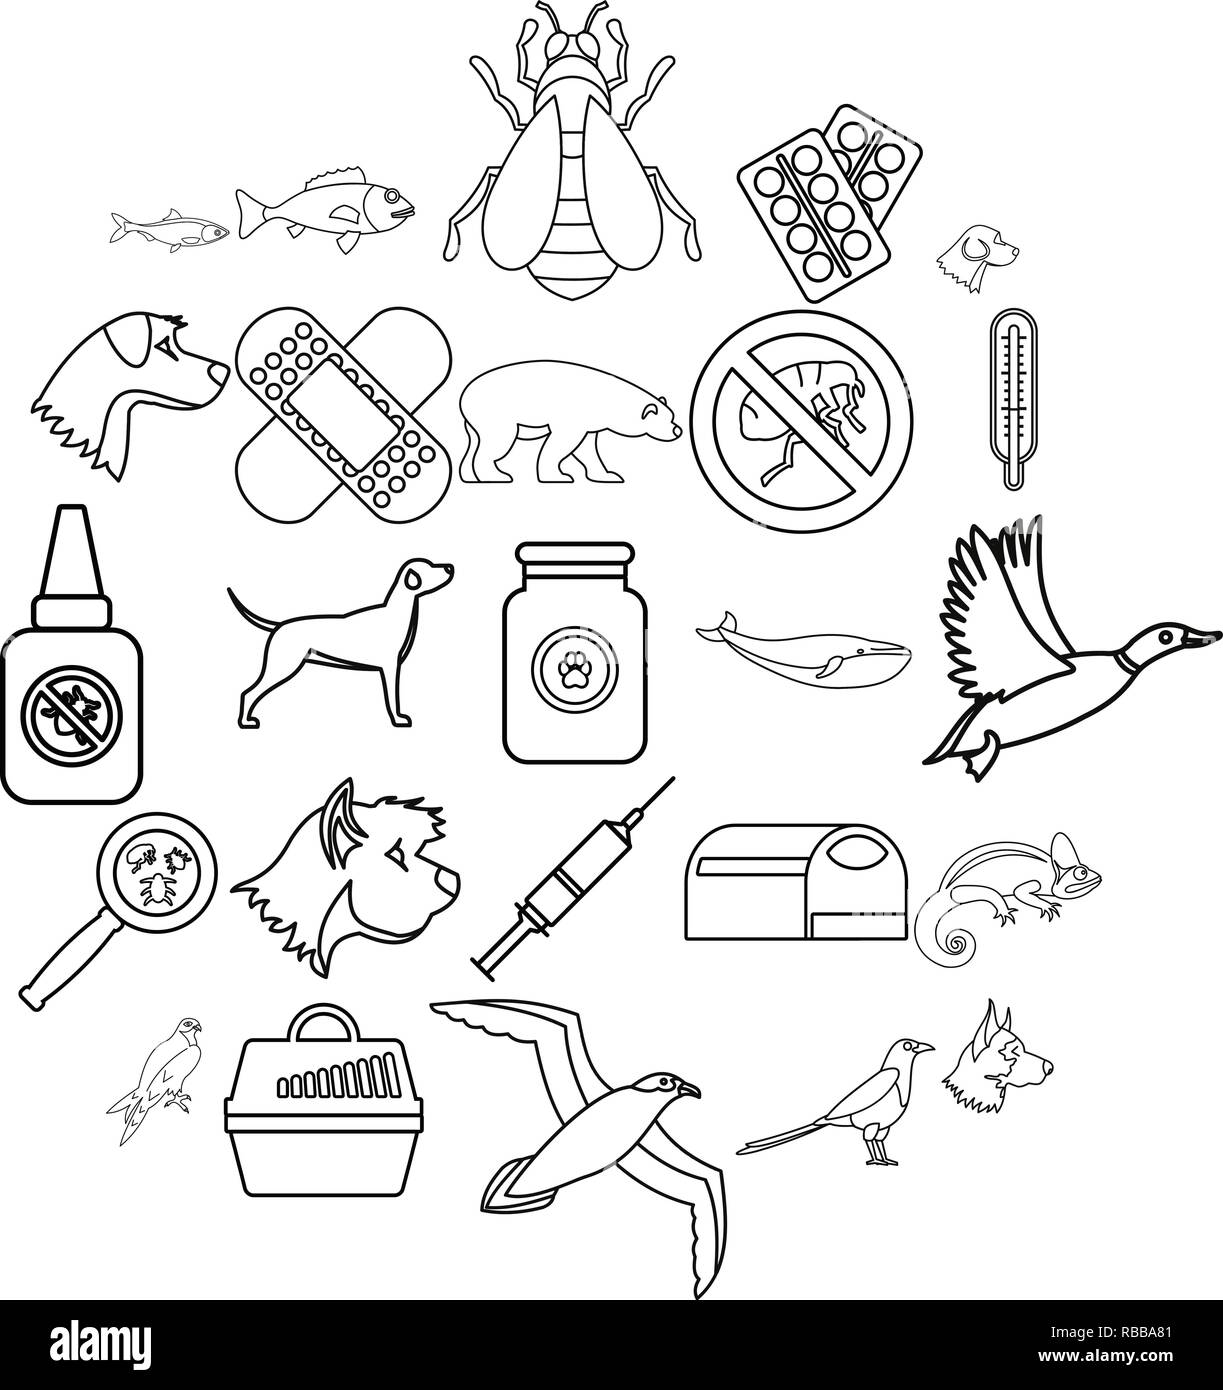 Caring for animal icons set, outline style - Stock Image